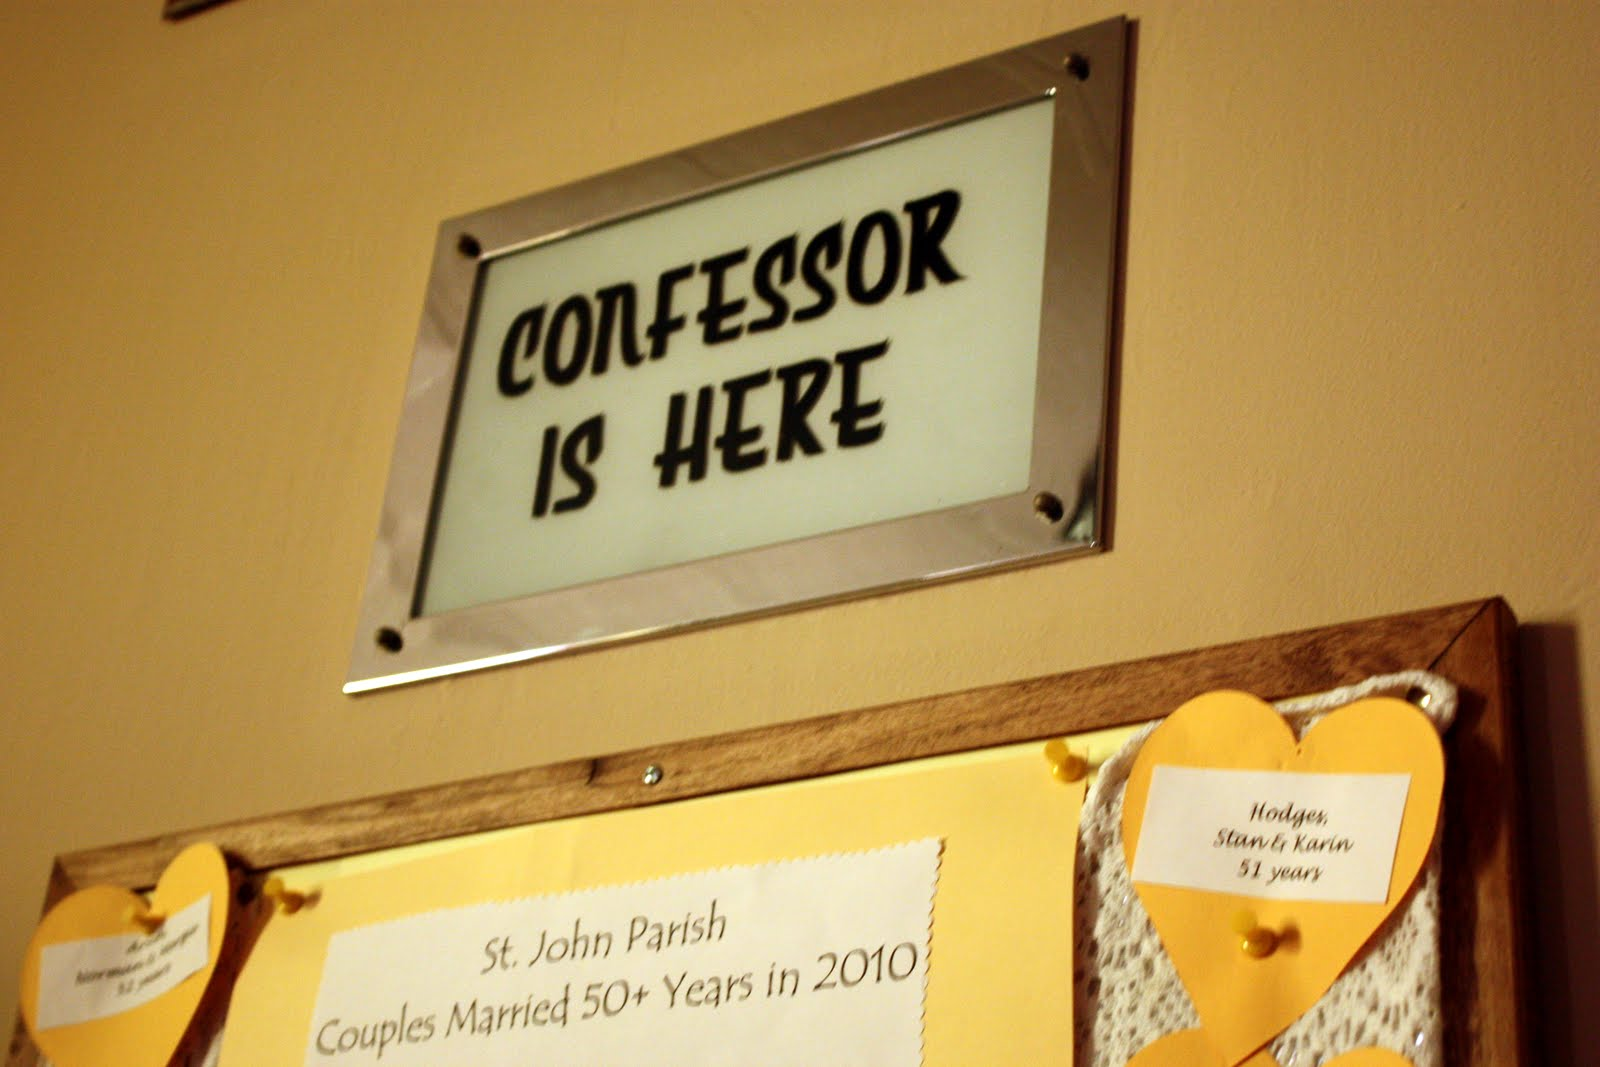 Confessional sign